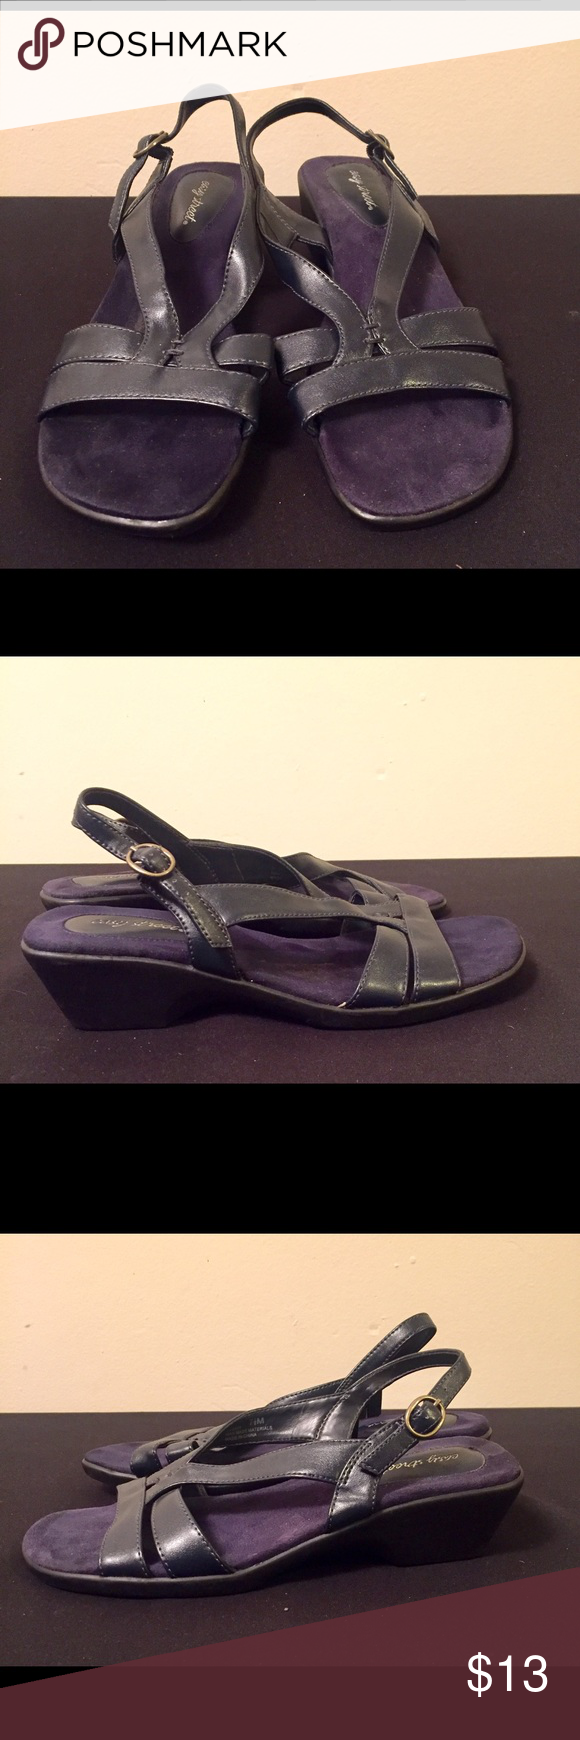 Like New Easy Street 7.5 Navy Blue Sandals Worn Twice. Like New Navy Blue Sandals. Open toe with ankle strap and open heel. All Man Made material. Little to no signs of wear on shoes or bottoms. Easy Street Shoes Sandals